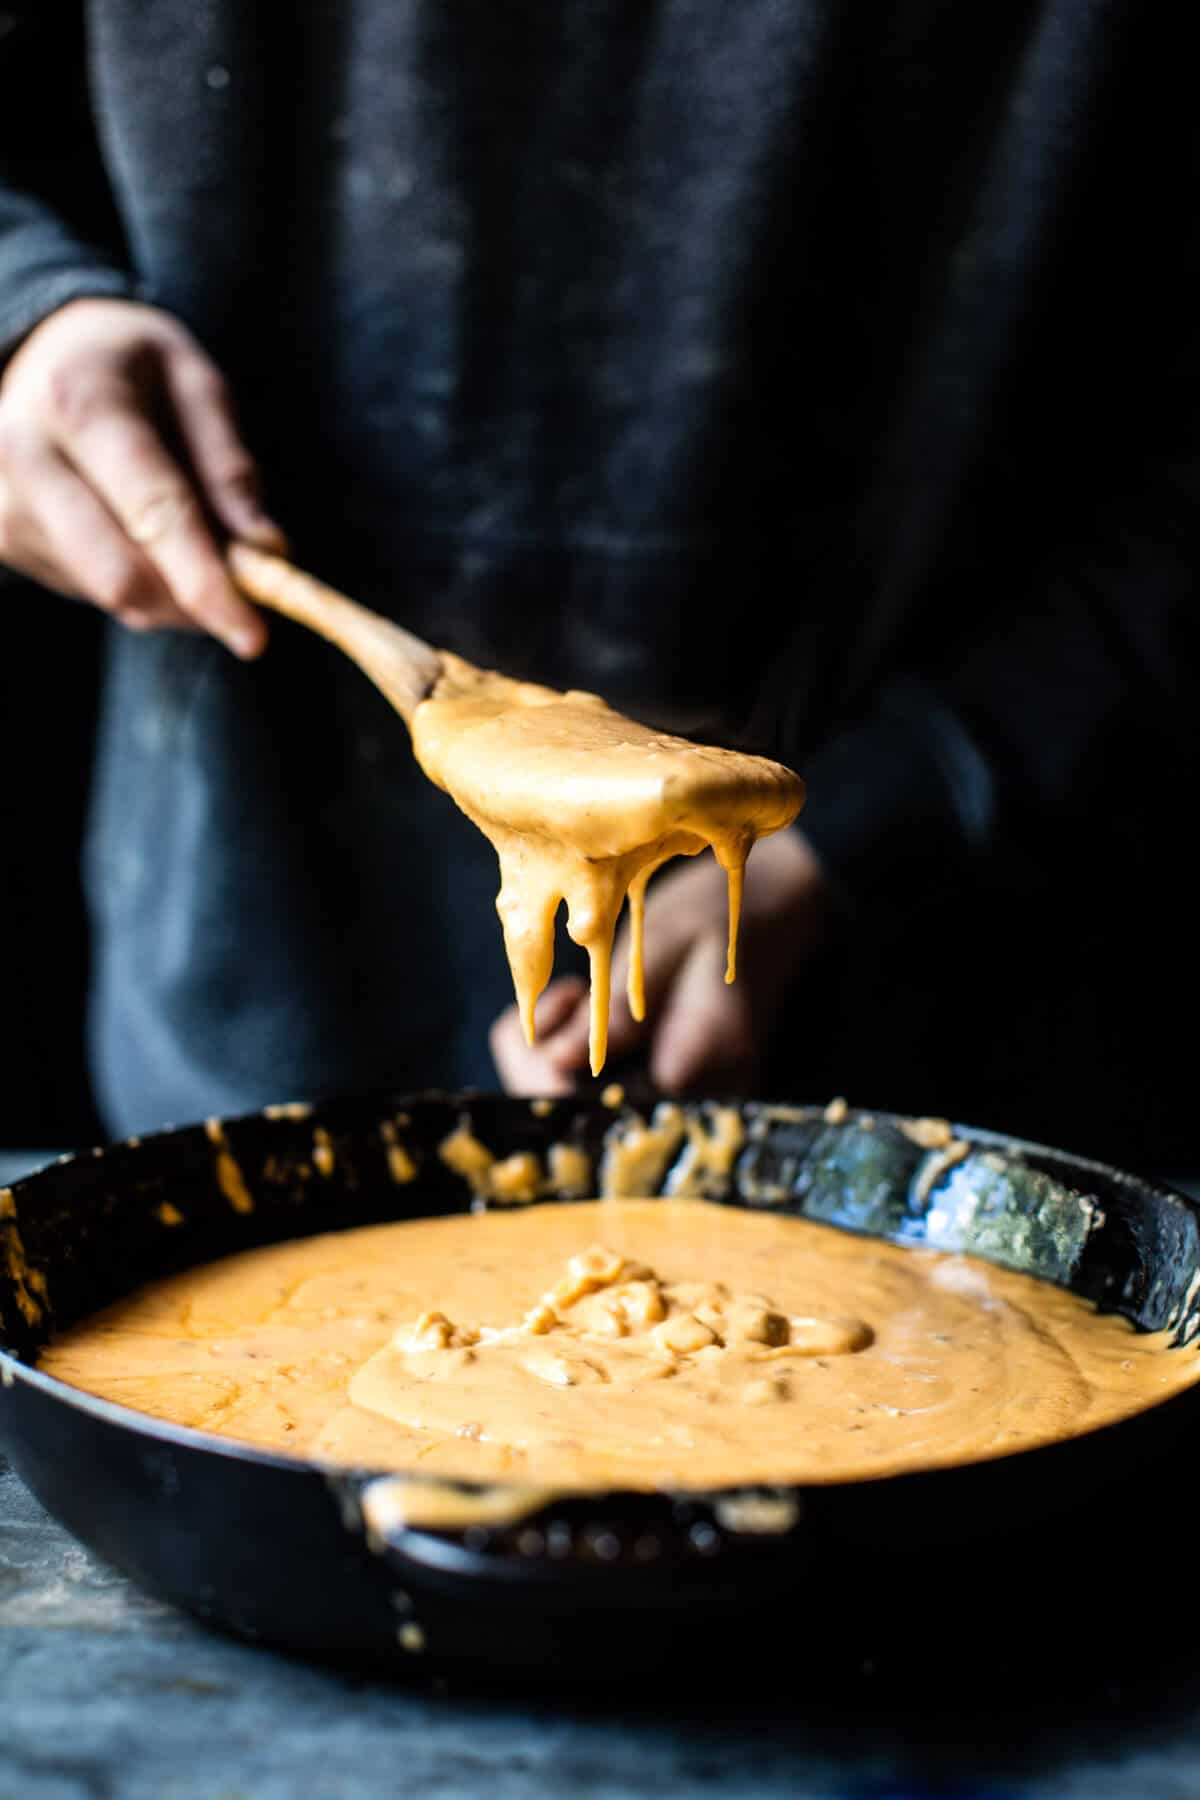 Pumpkin Beer Pretzels with Chipotle Queso | halfbakedharvest.com @hbharvest